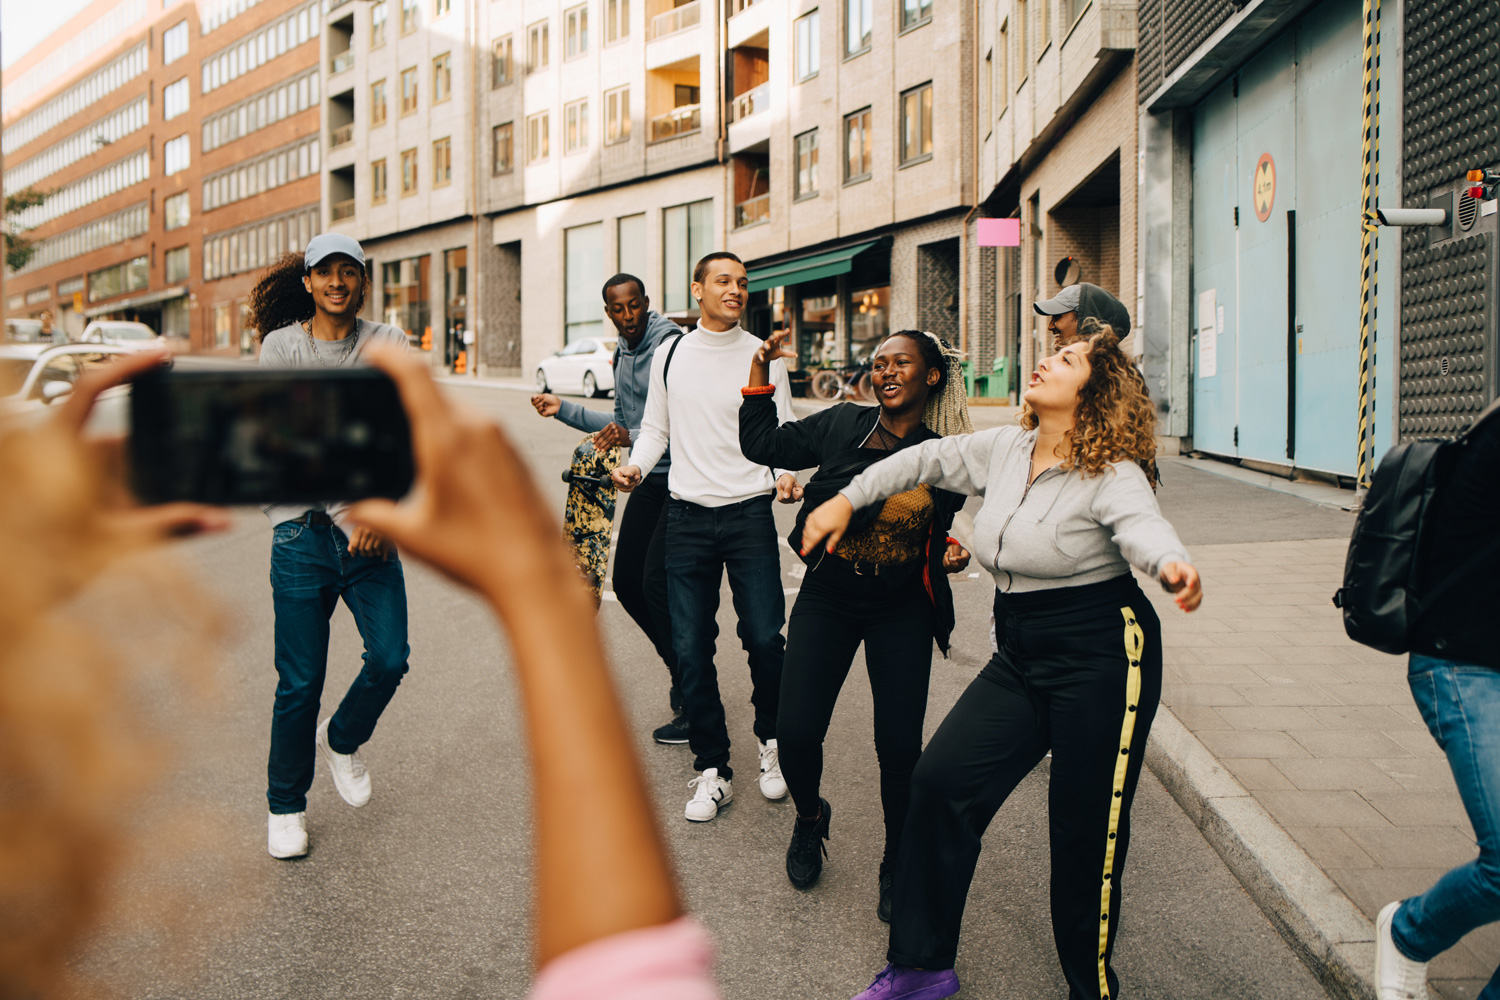 A group of people dancing together in the street as people film with their phones.